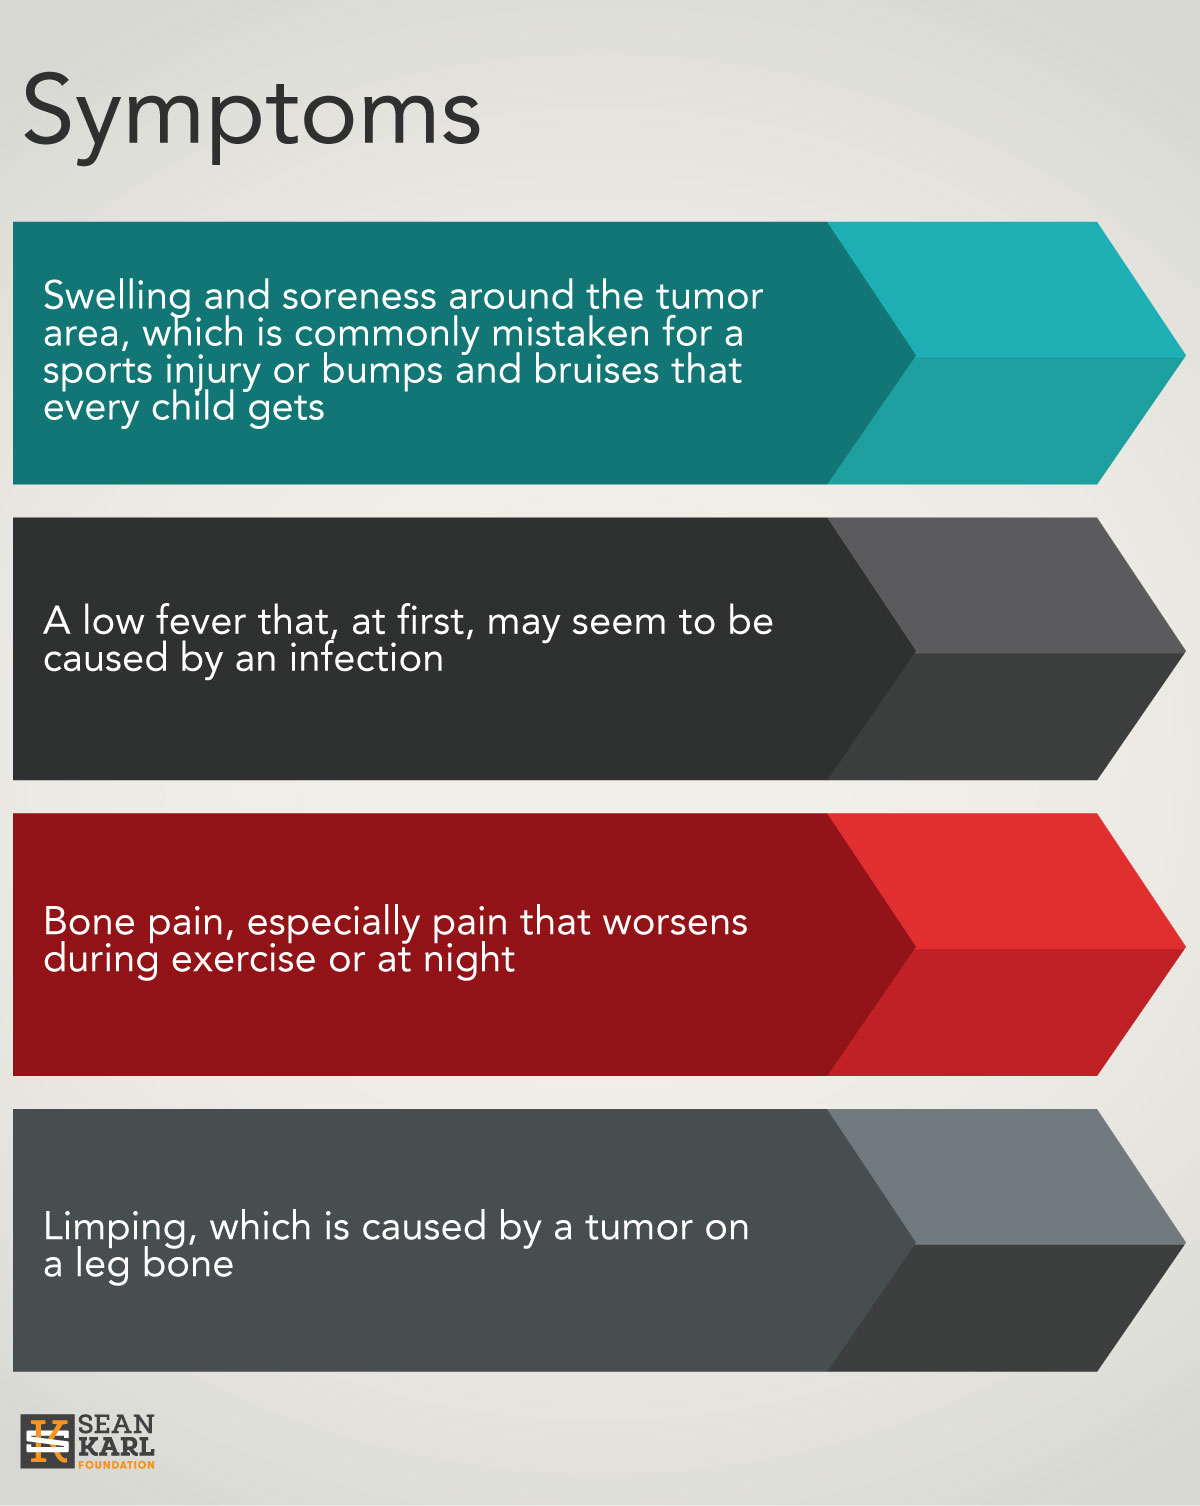 Symptoms of Ewing's Sarcoma